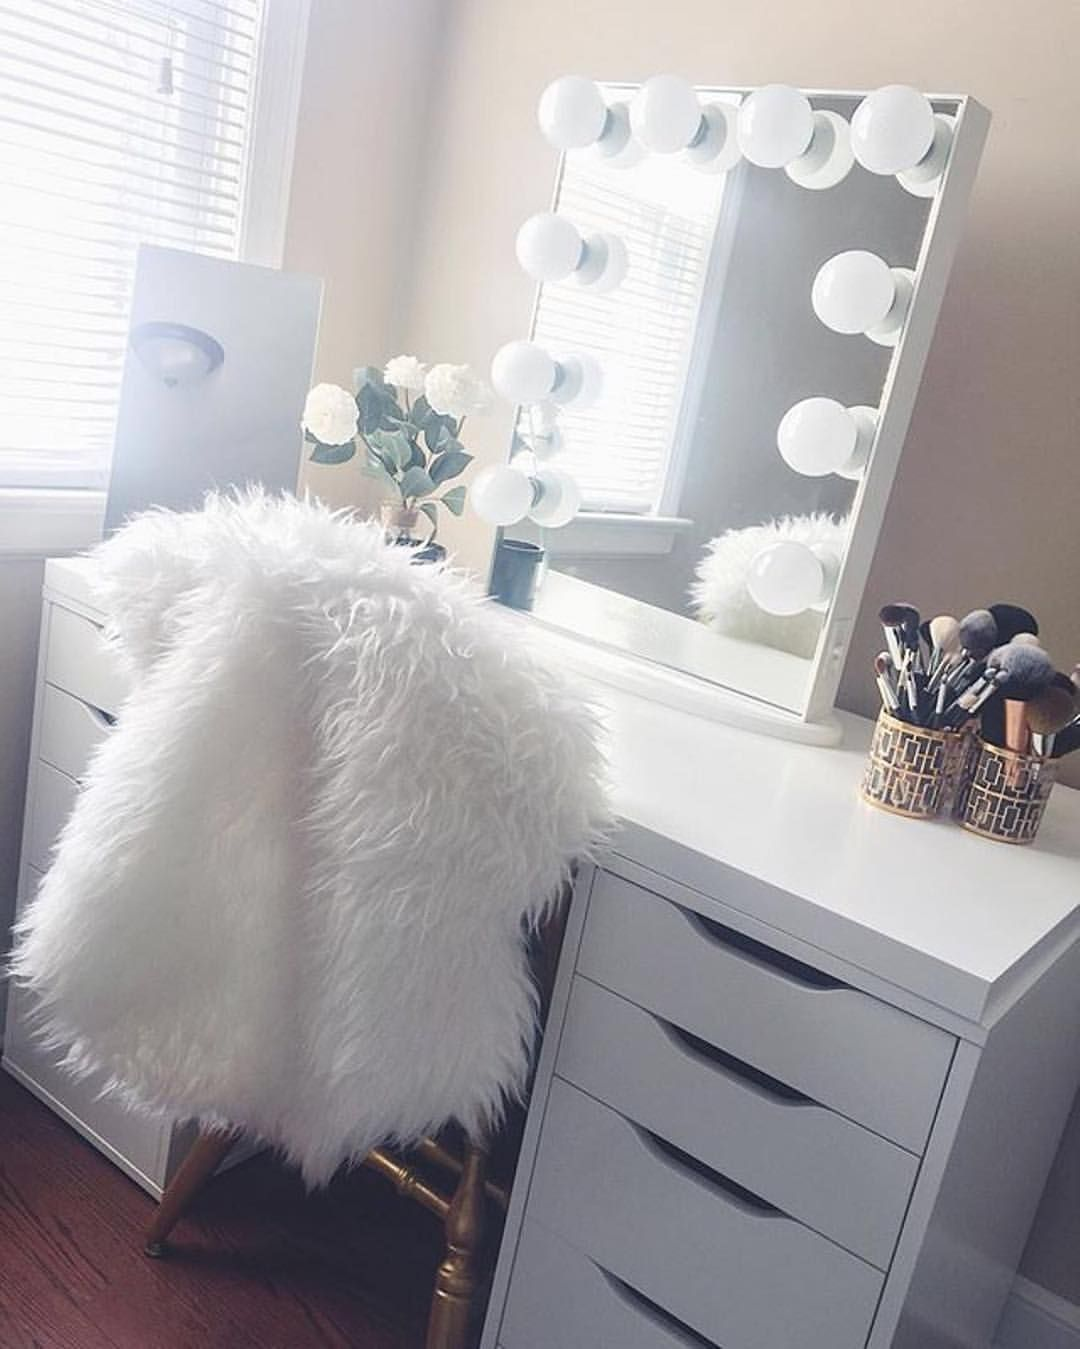 "3,687 Likes, 20 Comments - Impressions Vanity Co. (@impressionsvanity) on Instagram: ""Where all the magic happens ✨ ⠀  @byalyssaa featuring our #impressionsvanityglowxl"""